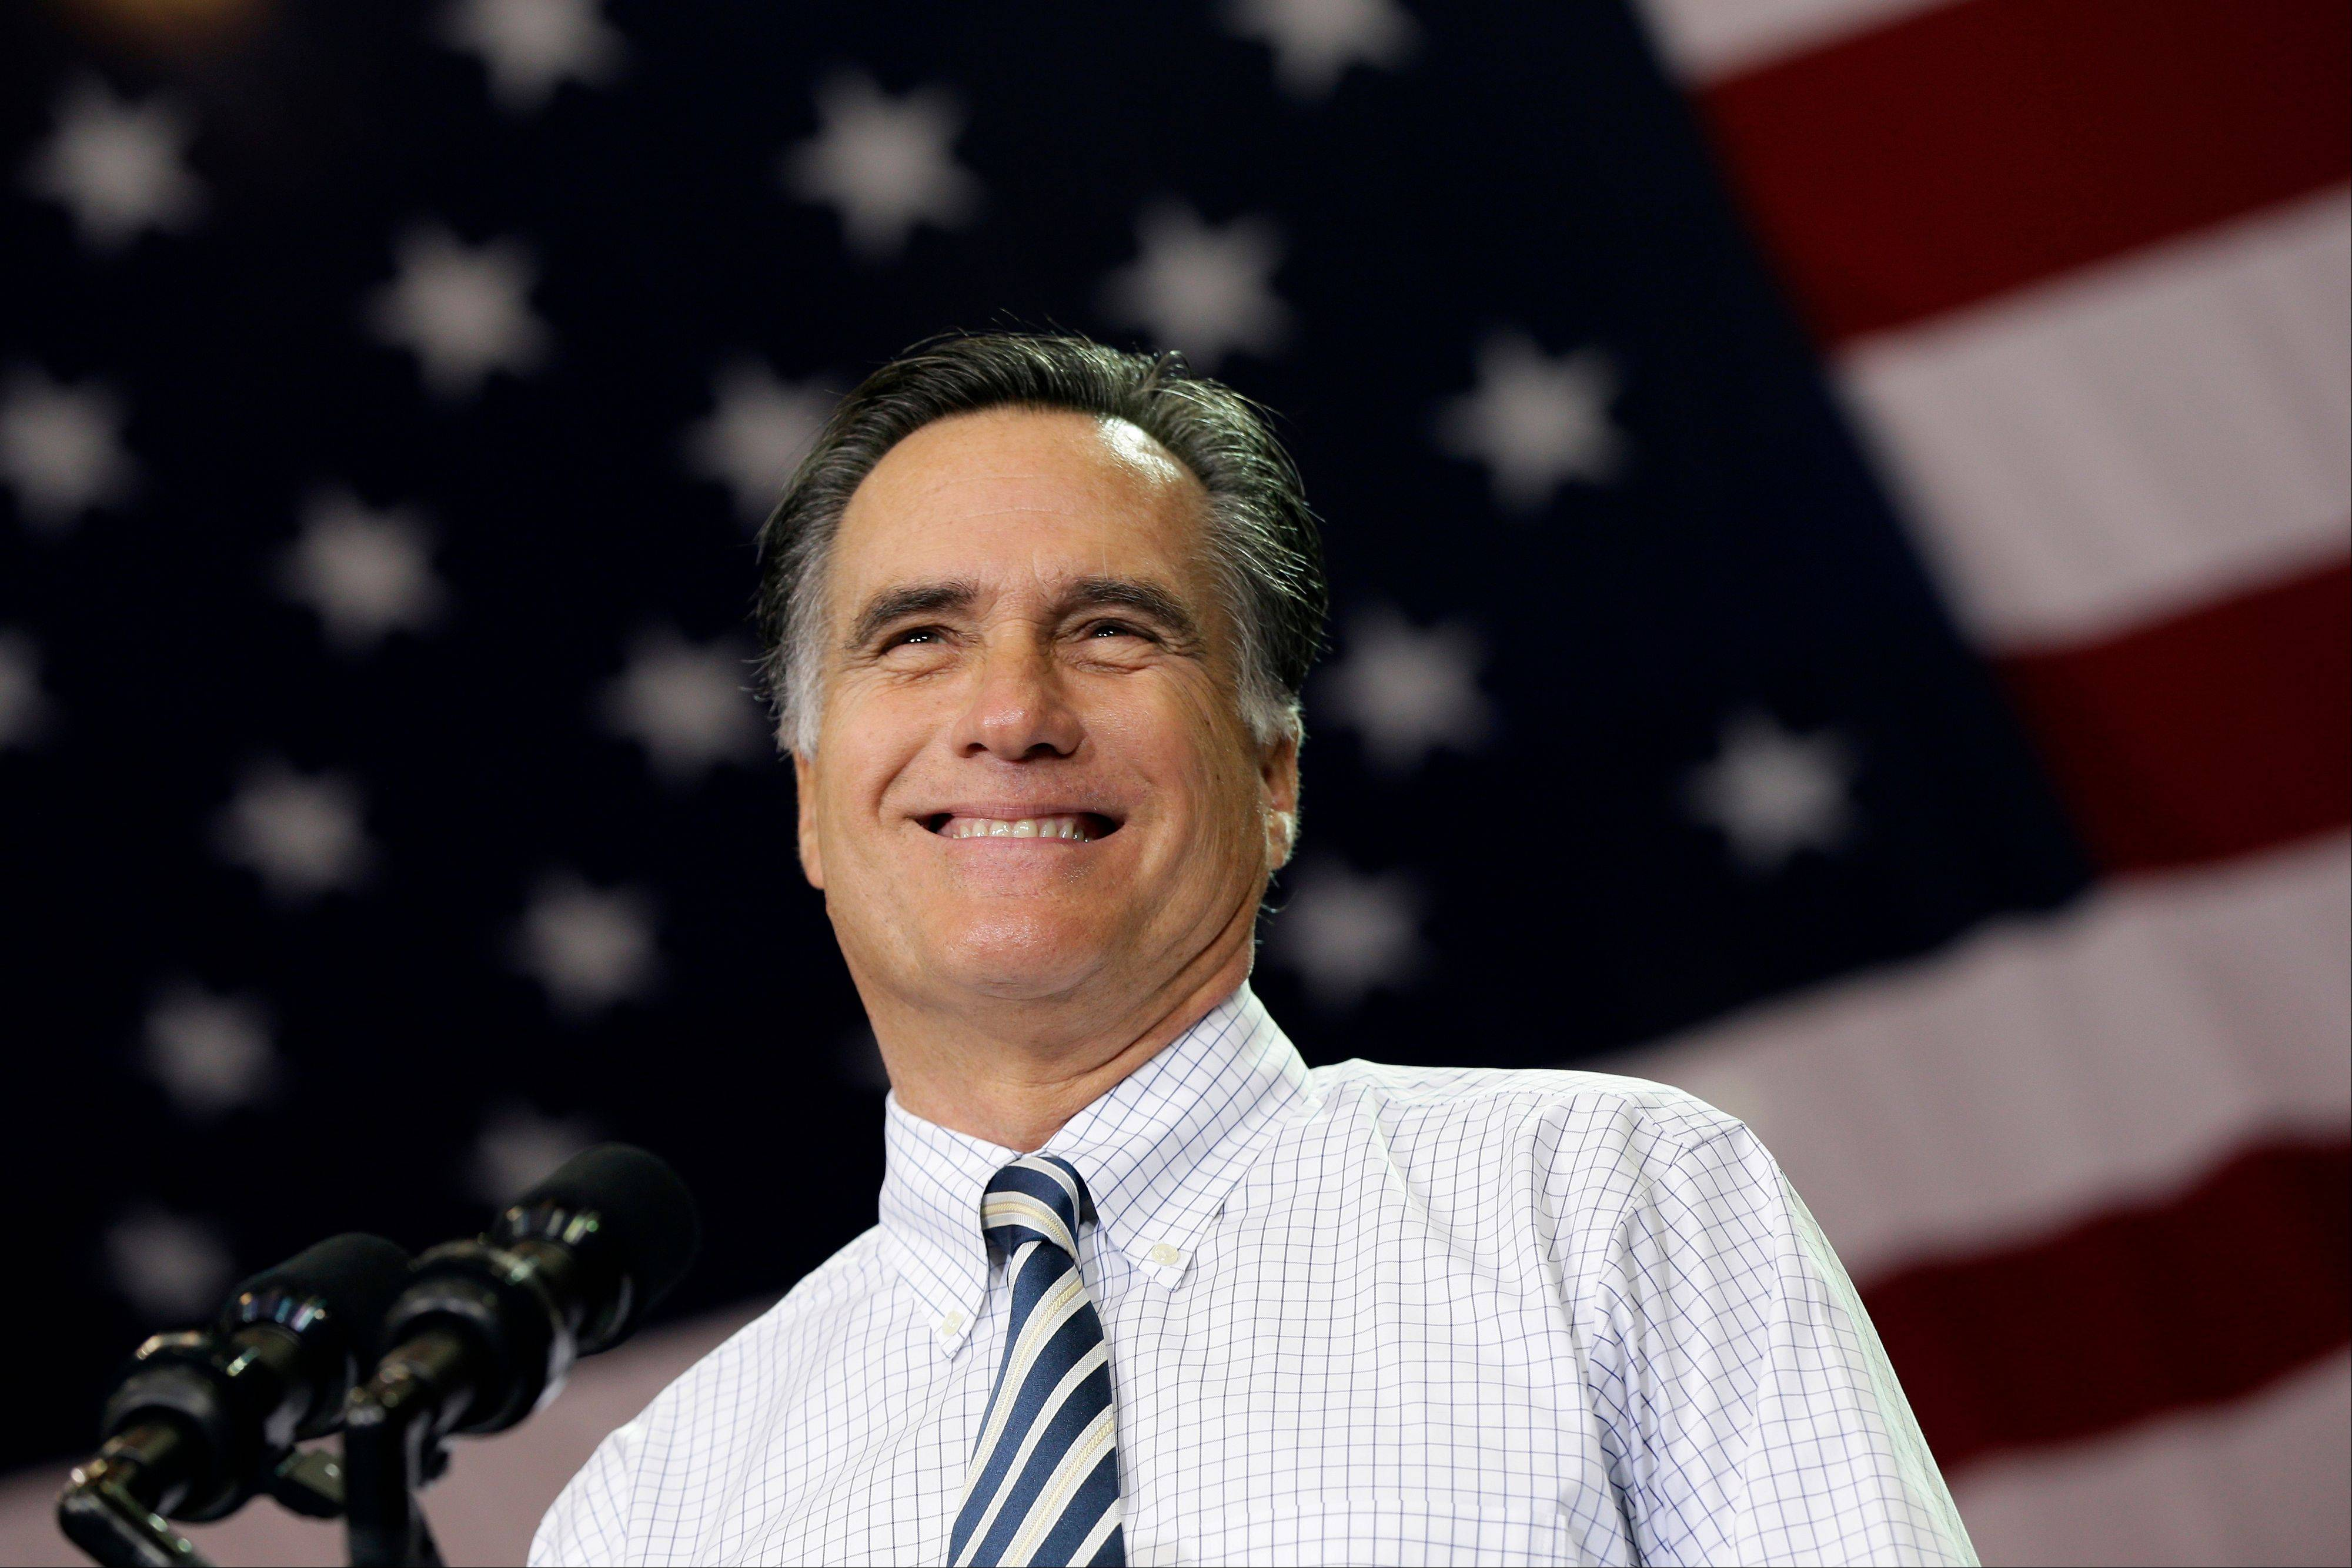 Republican presidential candidate and former Massachusetts Gov. Mitt Romney smiles as he campaigns at the International Exposition Center in Cleveland on Sunday.